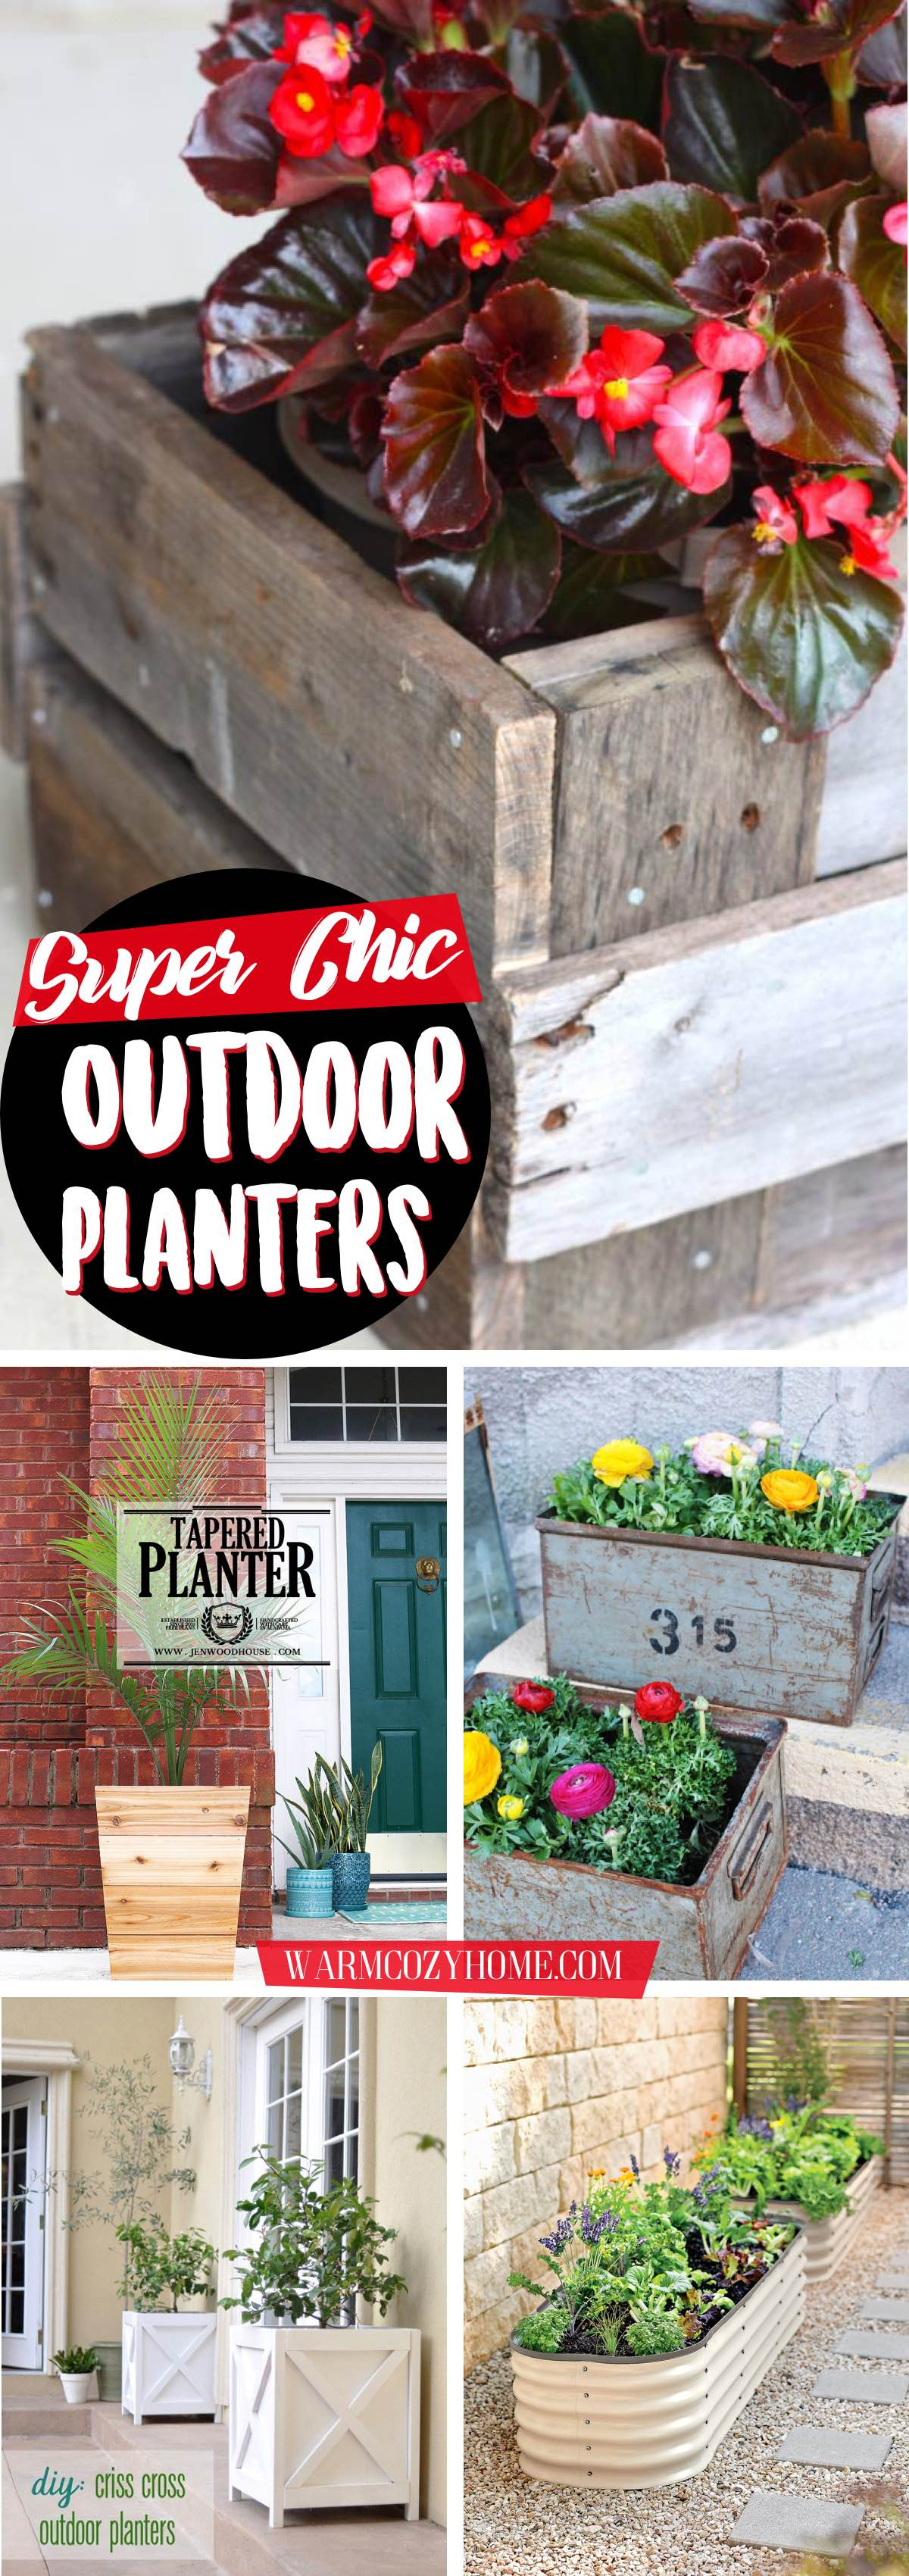 Super Chic Outdoor Planters